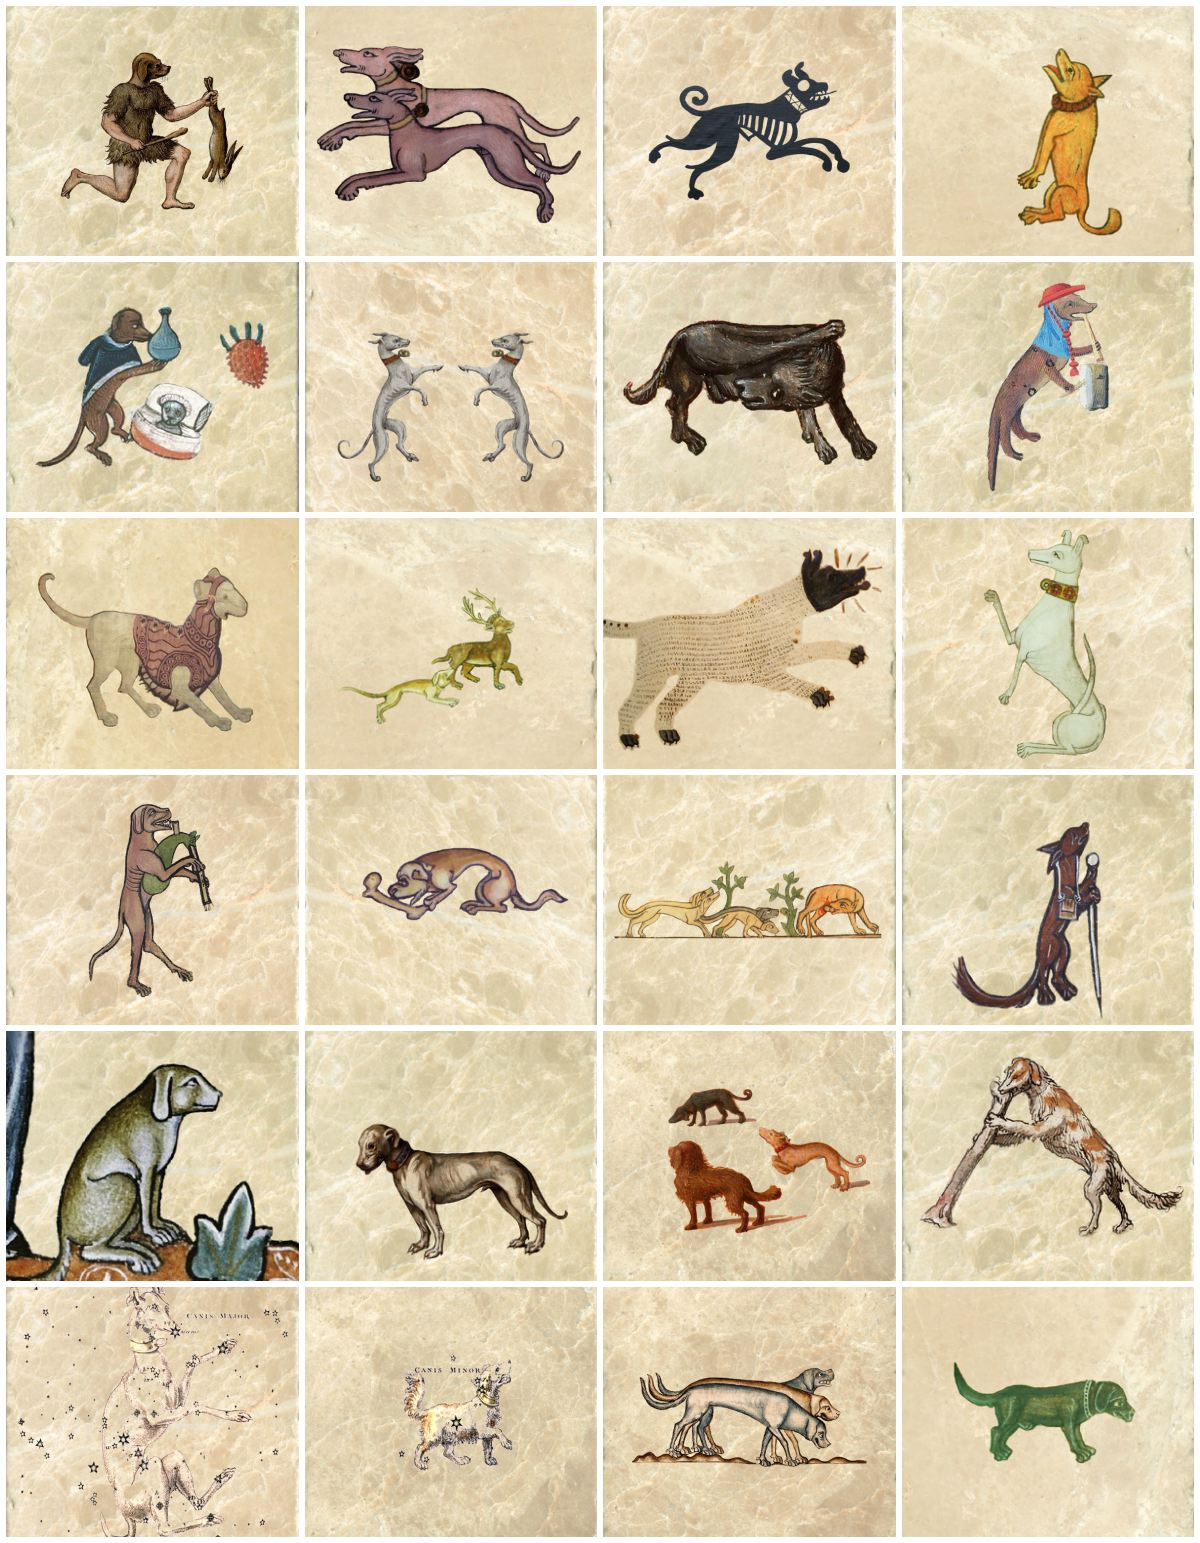 Medieval Dog Tiles. From top left: 	Dogheaded hunter, Luttrell Psalter hounds, Dog on encaustic Persian tile 1115, Early medieval dog begging, Medieval dog treating a cat for melancholy with milk thistle) Two dancing greyhounds 1485, Medieval dog doing what dogs do, Morgan Library dog beating a drum, Dog in a suit of armor early renaissance,	Gorelston Psalter dog 1310 attacking a deer, 9th century illustration of Sirius from The Araeta France, Dog from the coat of arms of Henry VII,  Dog playing a cat bagpipe from The Funeral of Renard the Fox c.1300, Medieval dog eating a bone from French Book of Hours c.1350, Dogs braying at the hunt, Marginalia dog carrying a satchel, Medieval dog attendant, Italian pit dog, Canis Angelicus Albus, Three street dogs, Dog chewing a bone forming the letter 'A', Canis Major star map, Canis Minor star map, Three brackers c. 1400, Sad green hunting hound.